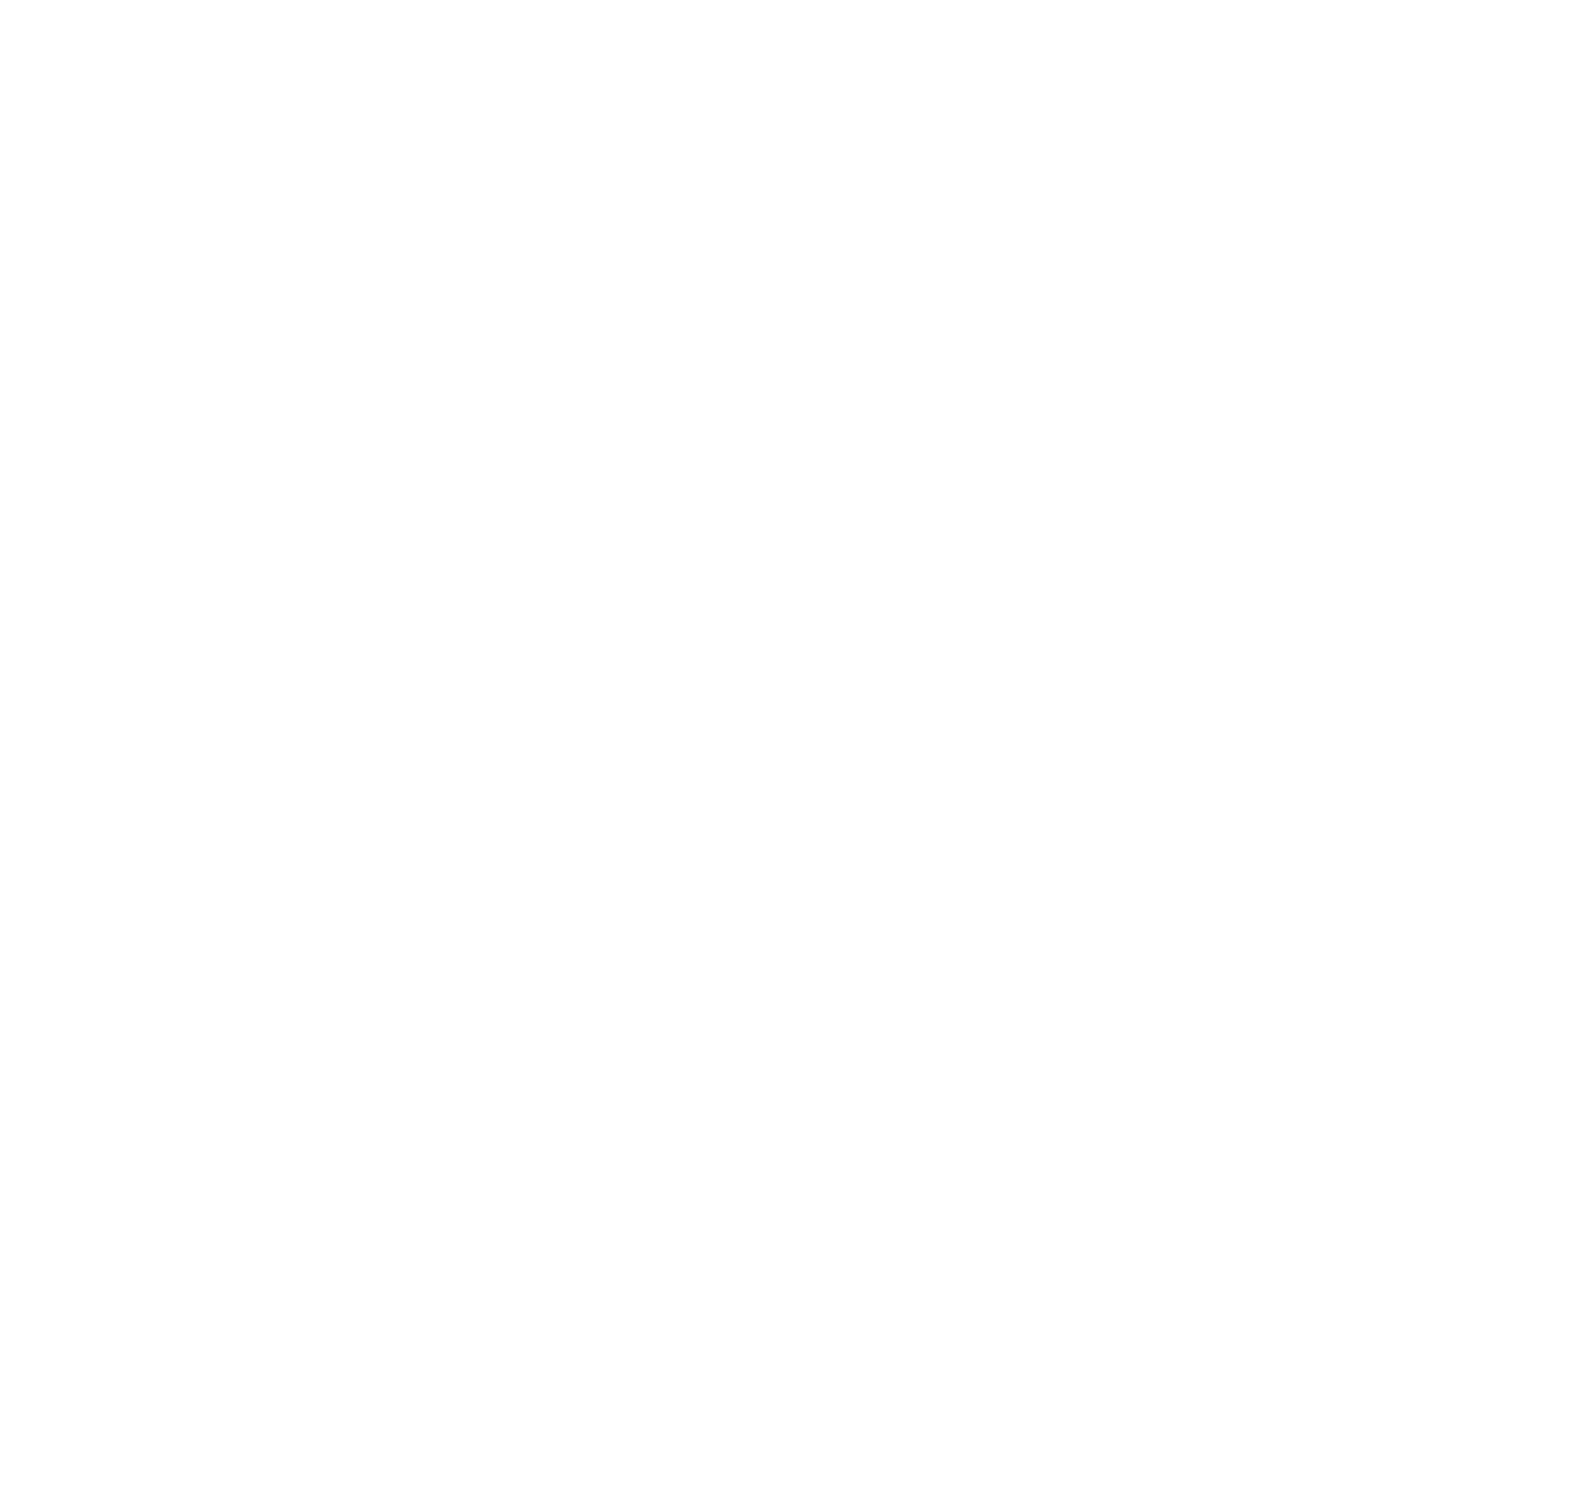 Wise Owl Property